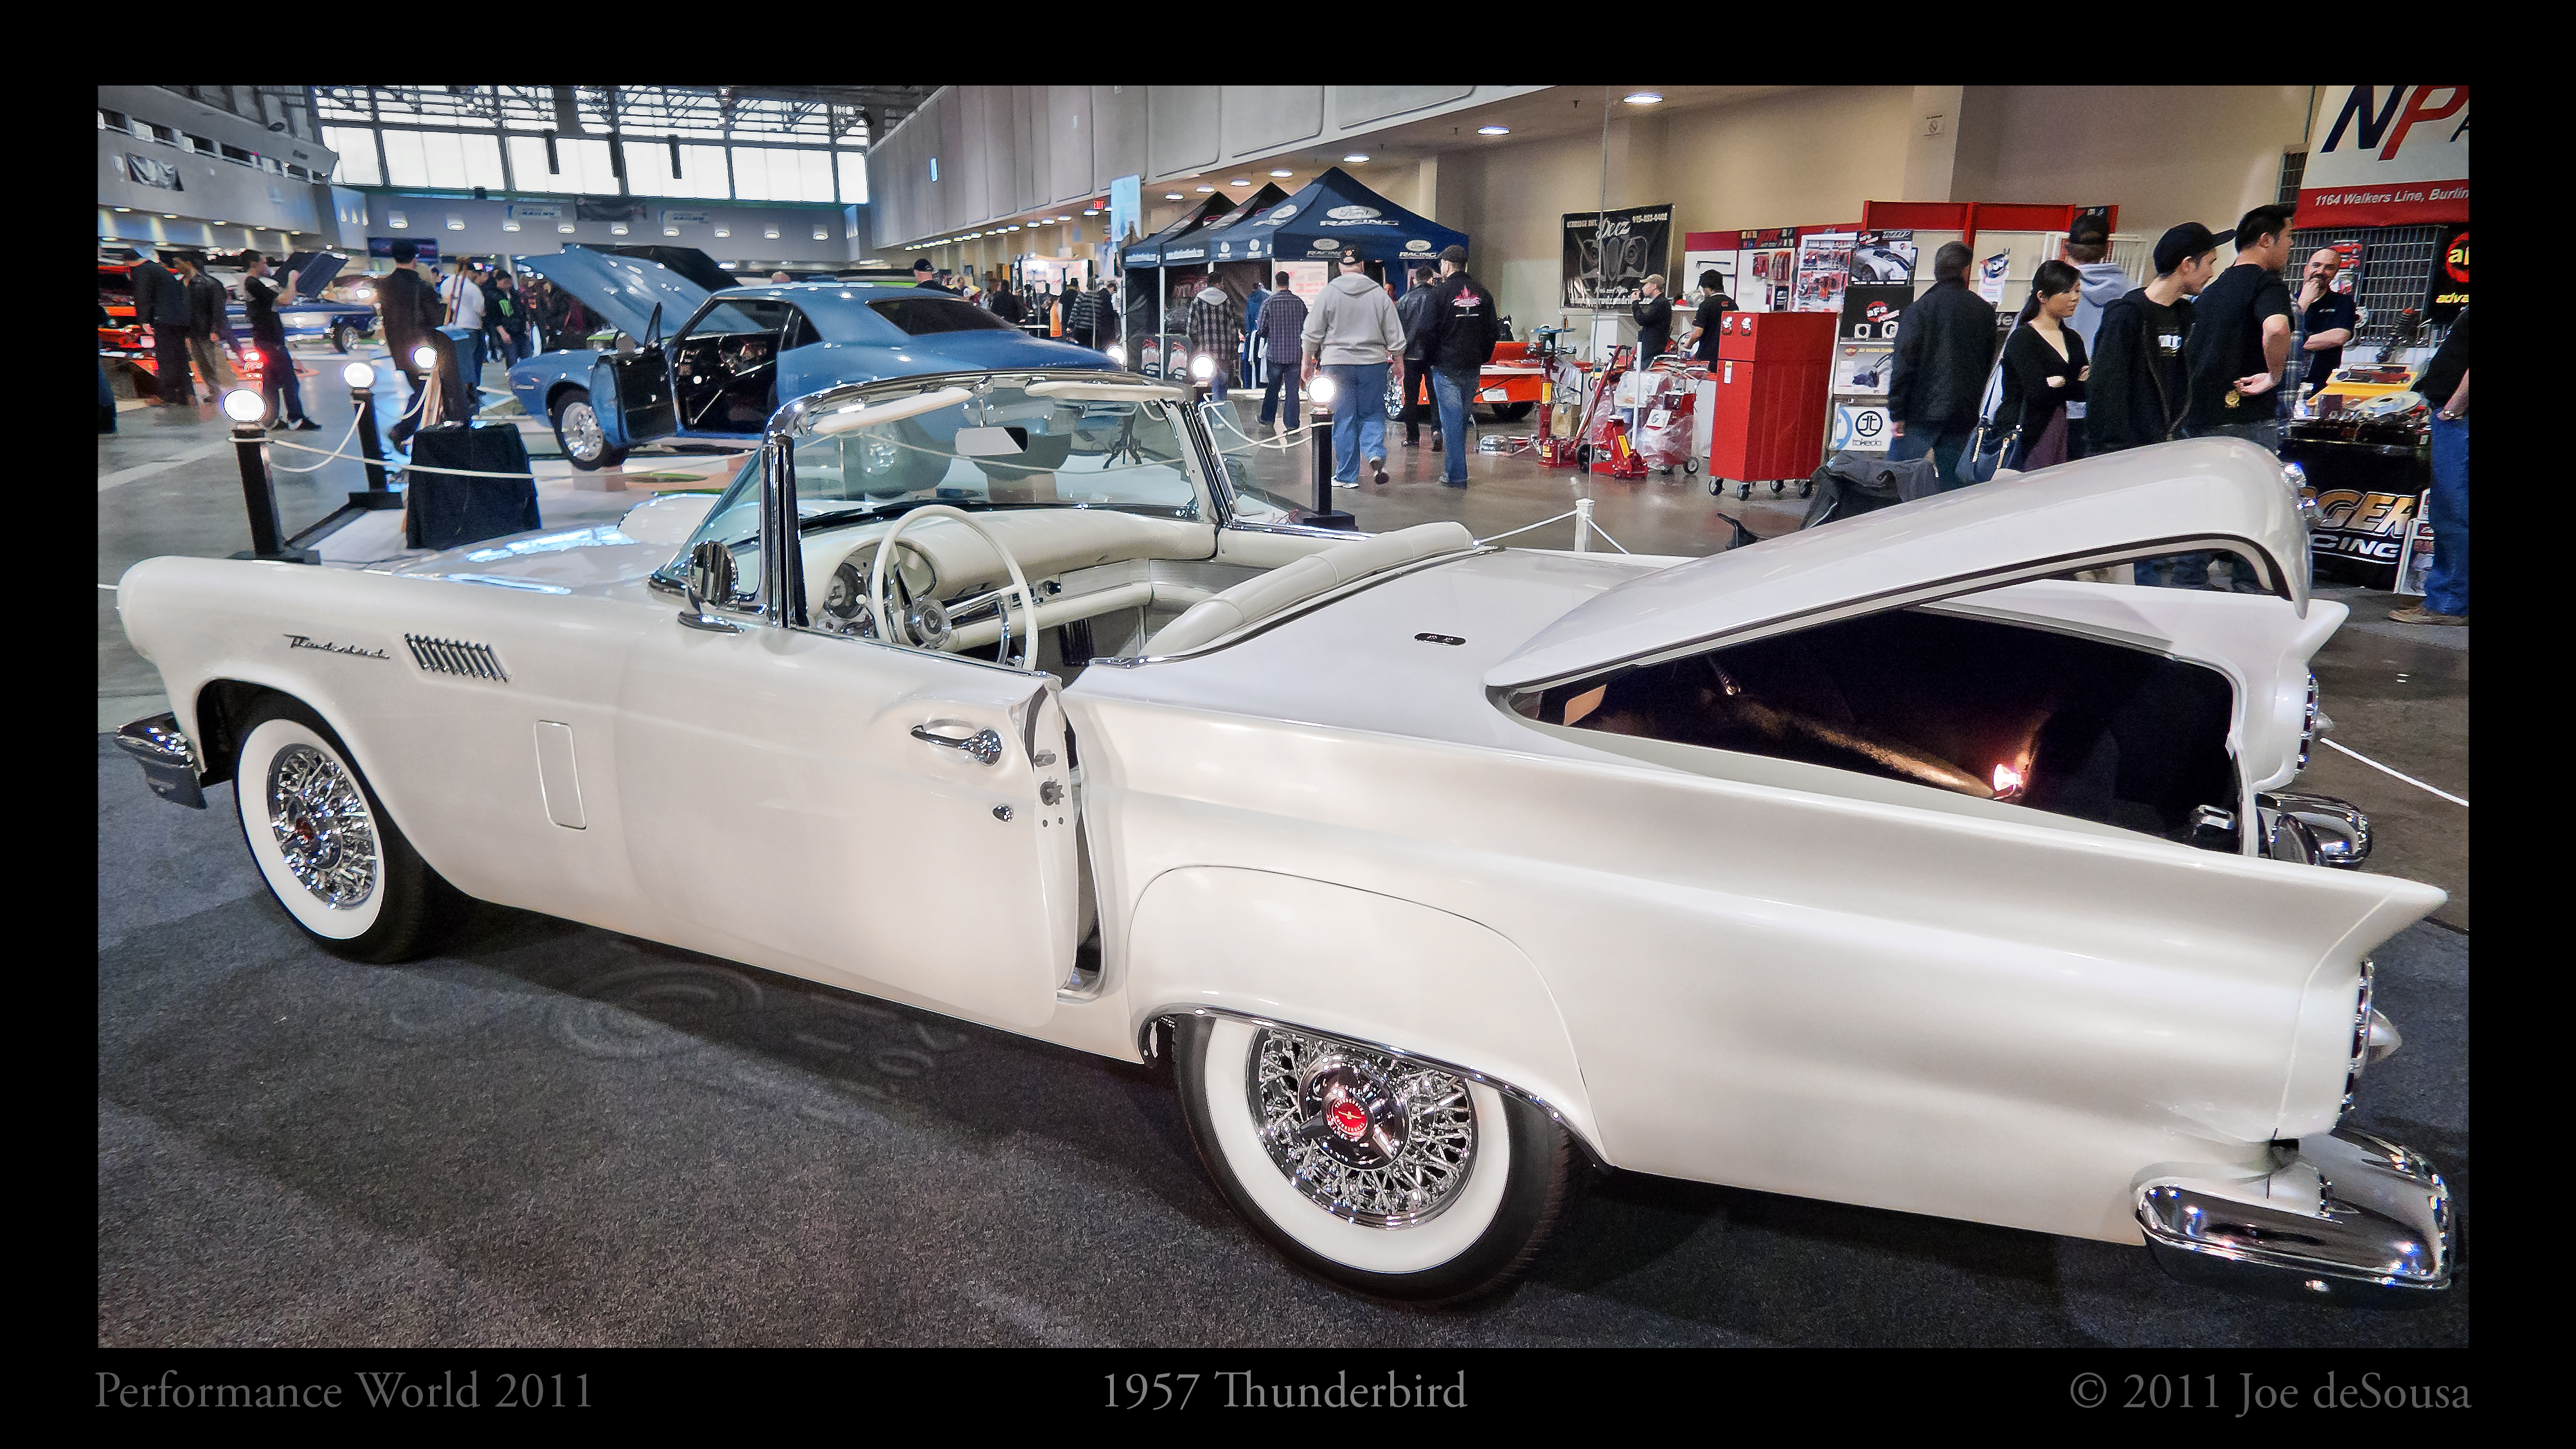 1957 Ford Thunderbird, Photo border, Thunderbird, Vehicle, Viveza, HQ Photo